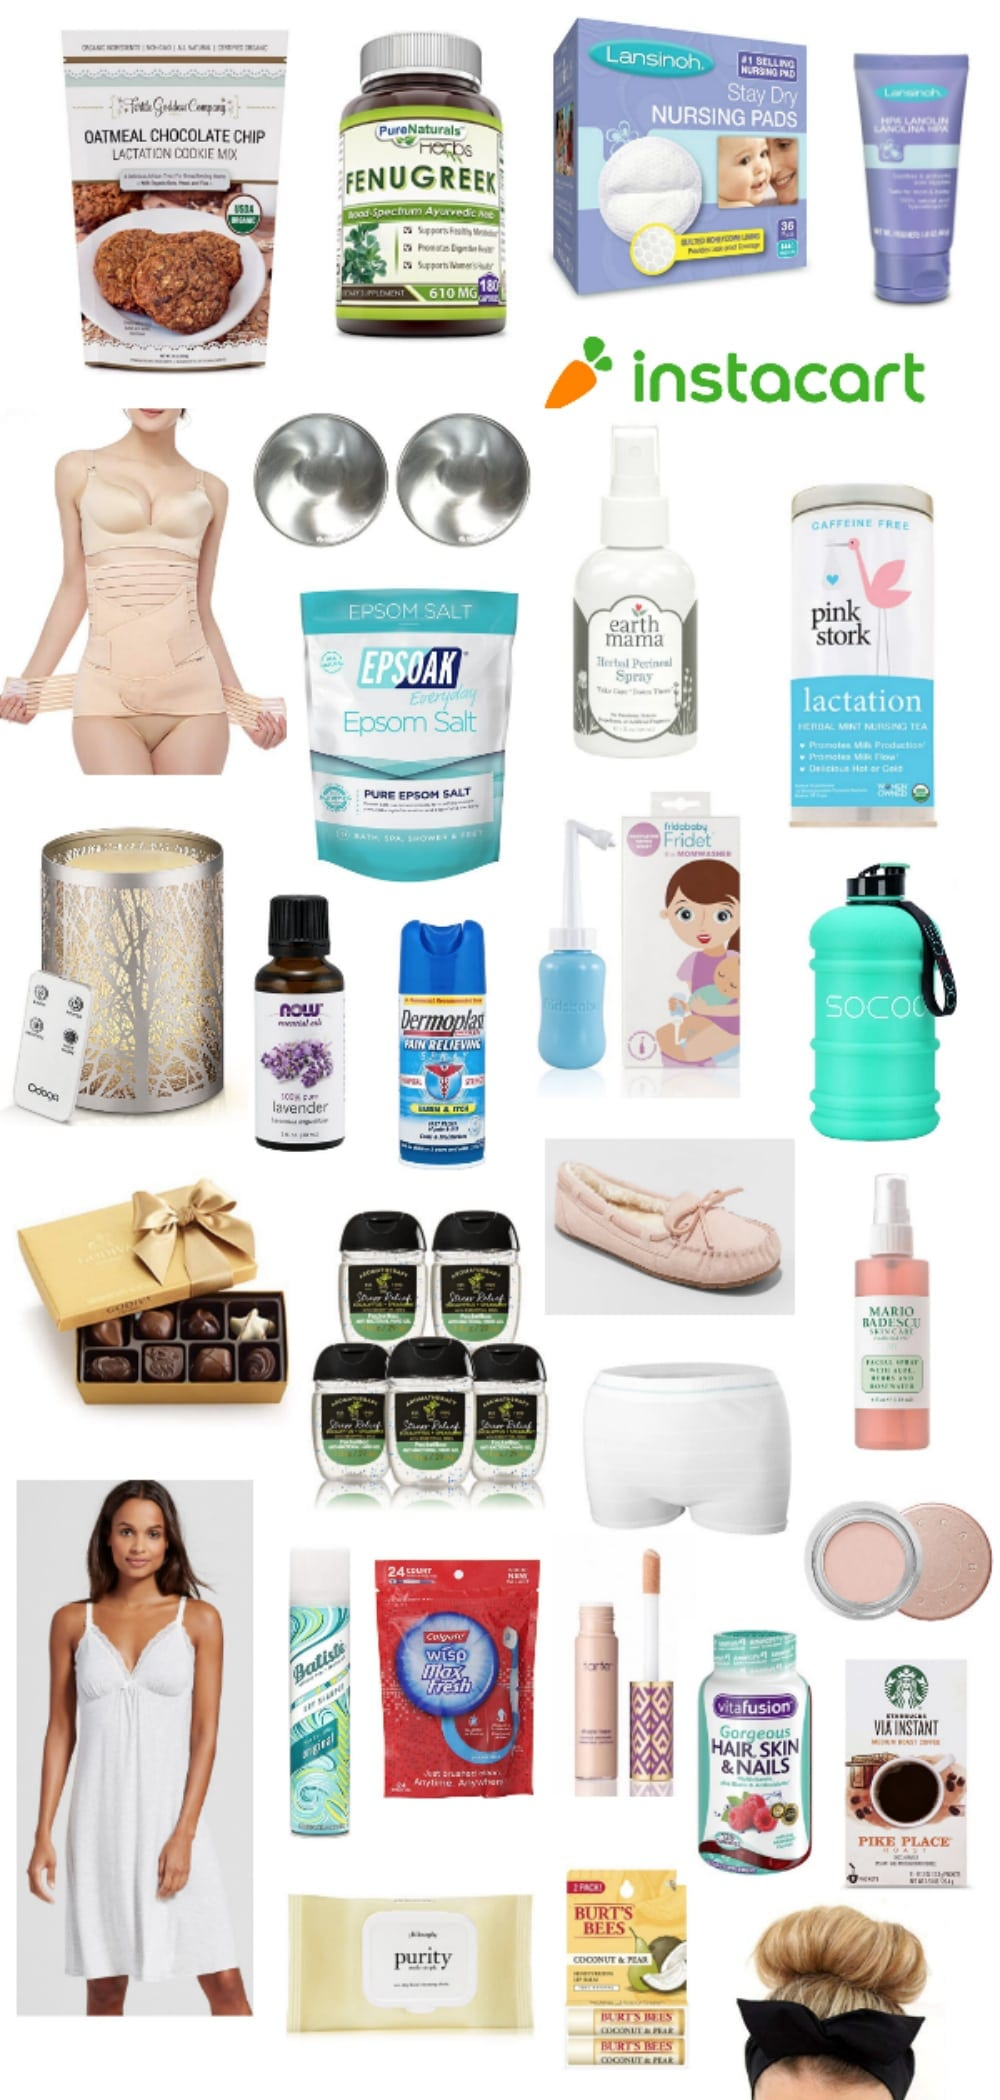 A shopping list gift guide for postpartum recovery to help with lactation, pain relief, hormonal side effects, stress-relief, and self-care to help mom quickly feel like her pretty self again.